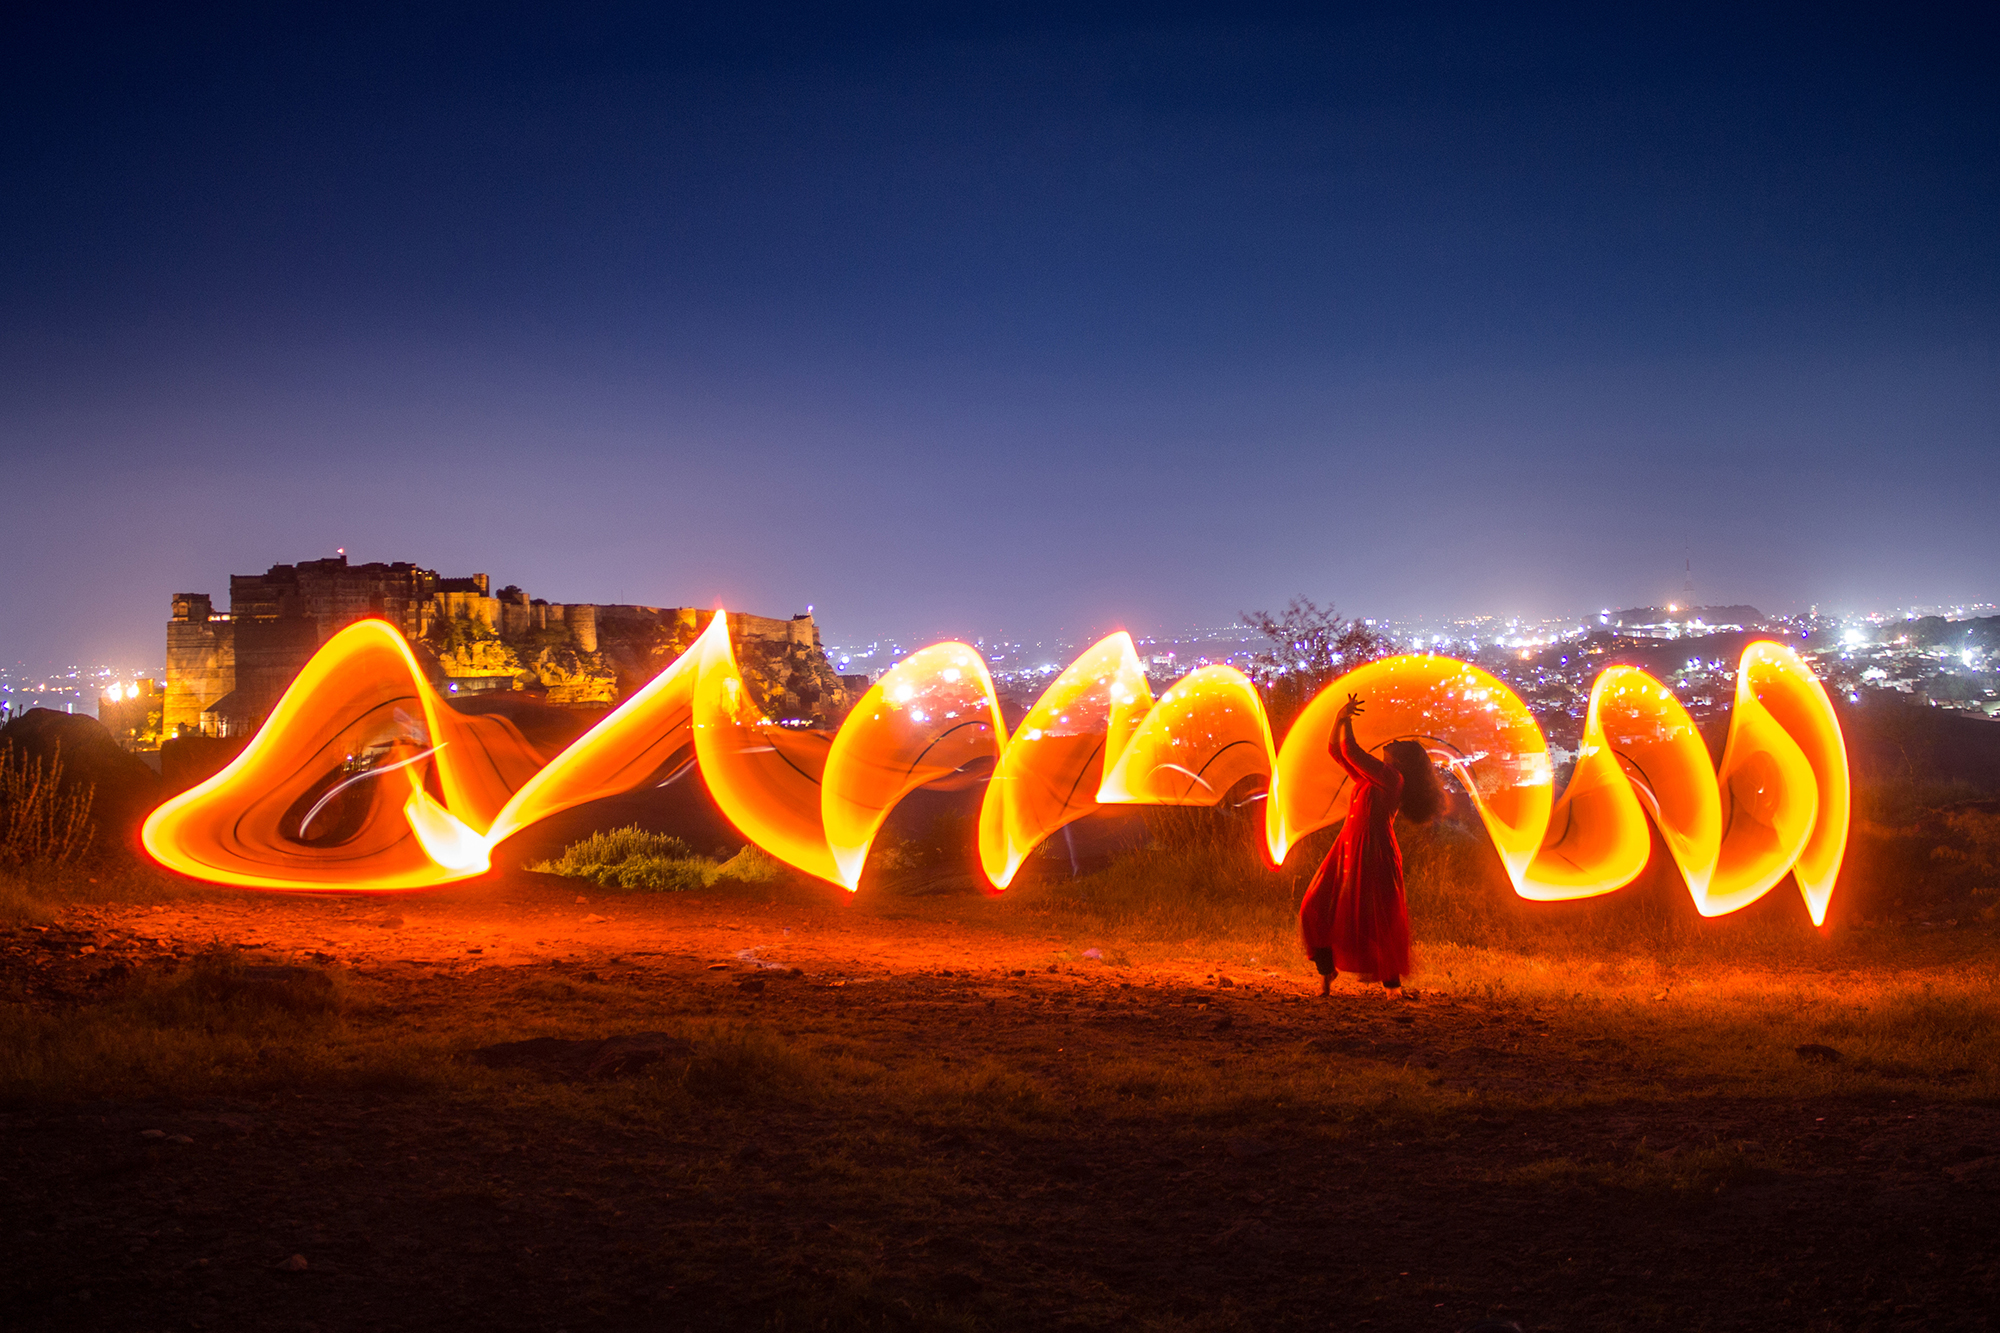 A light painting flow with Mehrangarh fort & blue city in background